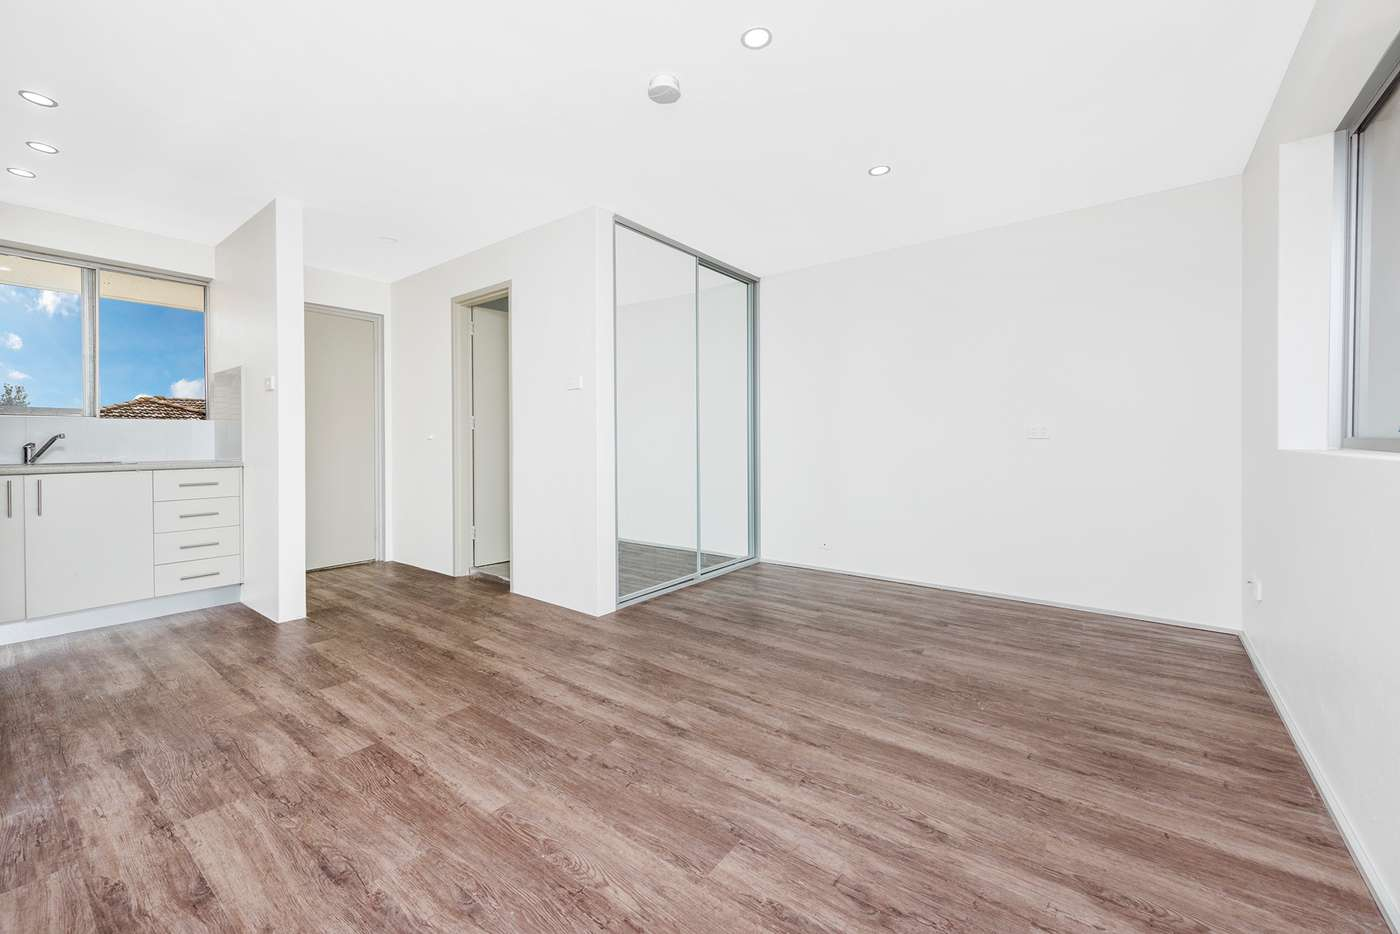 Main view of Homely studio listing, 28/4 Bank Street, Meadowbank NSW 2114